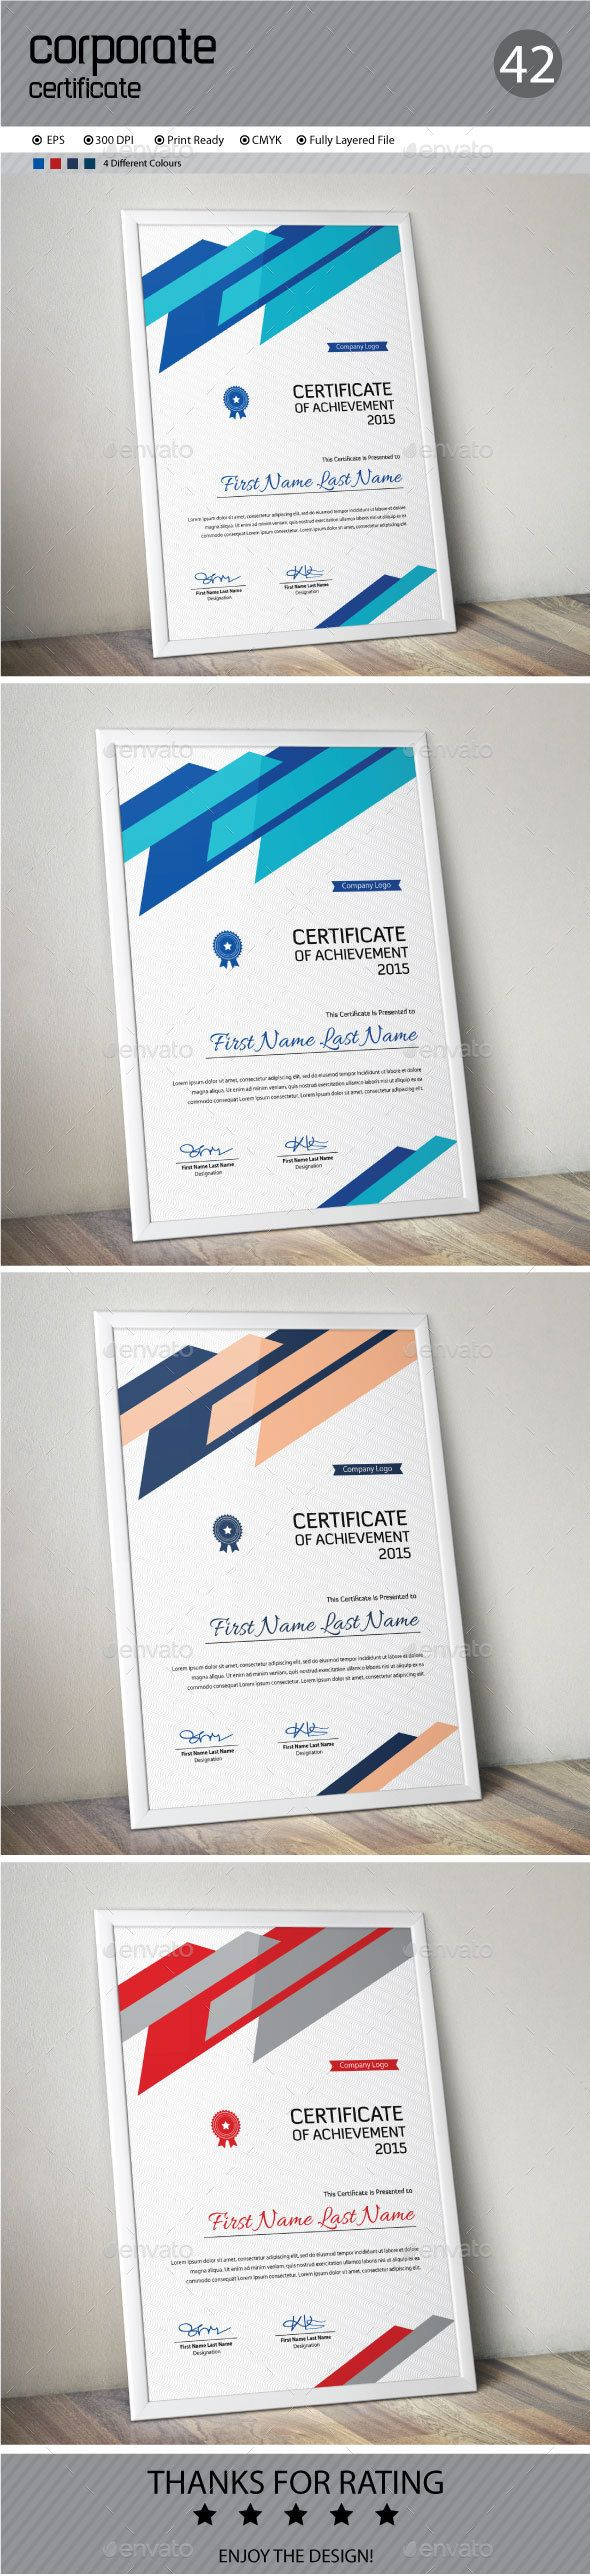 Certificate Template Vector EPS. Download here: http://graphicriver.net/item/certificate/14275424?ref=ksioks